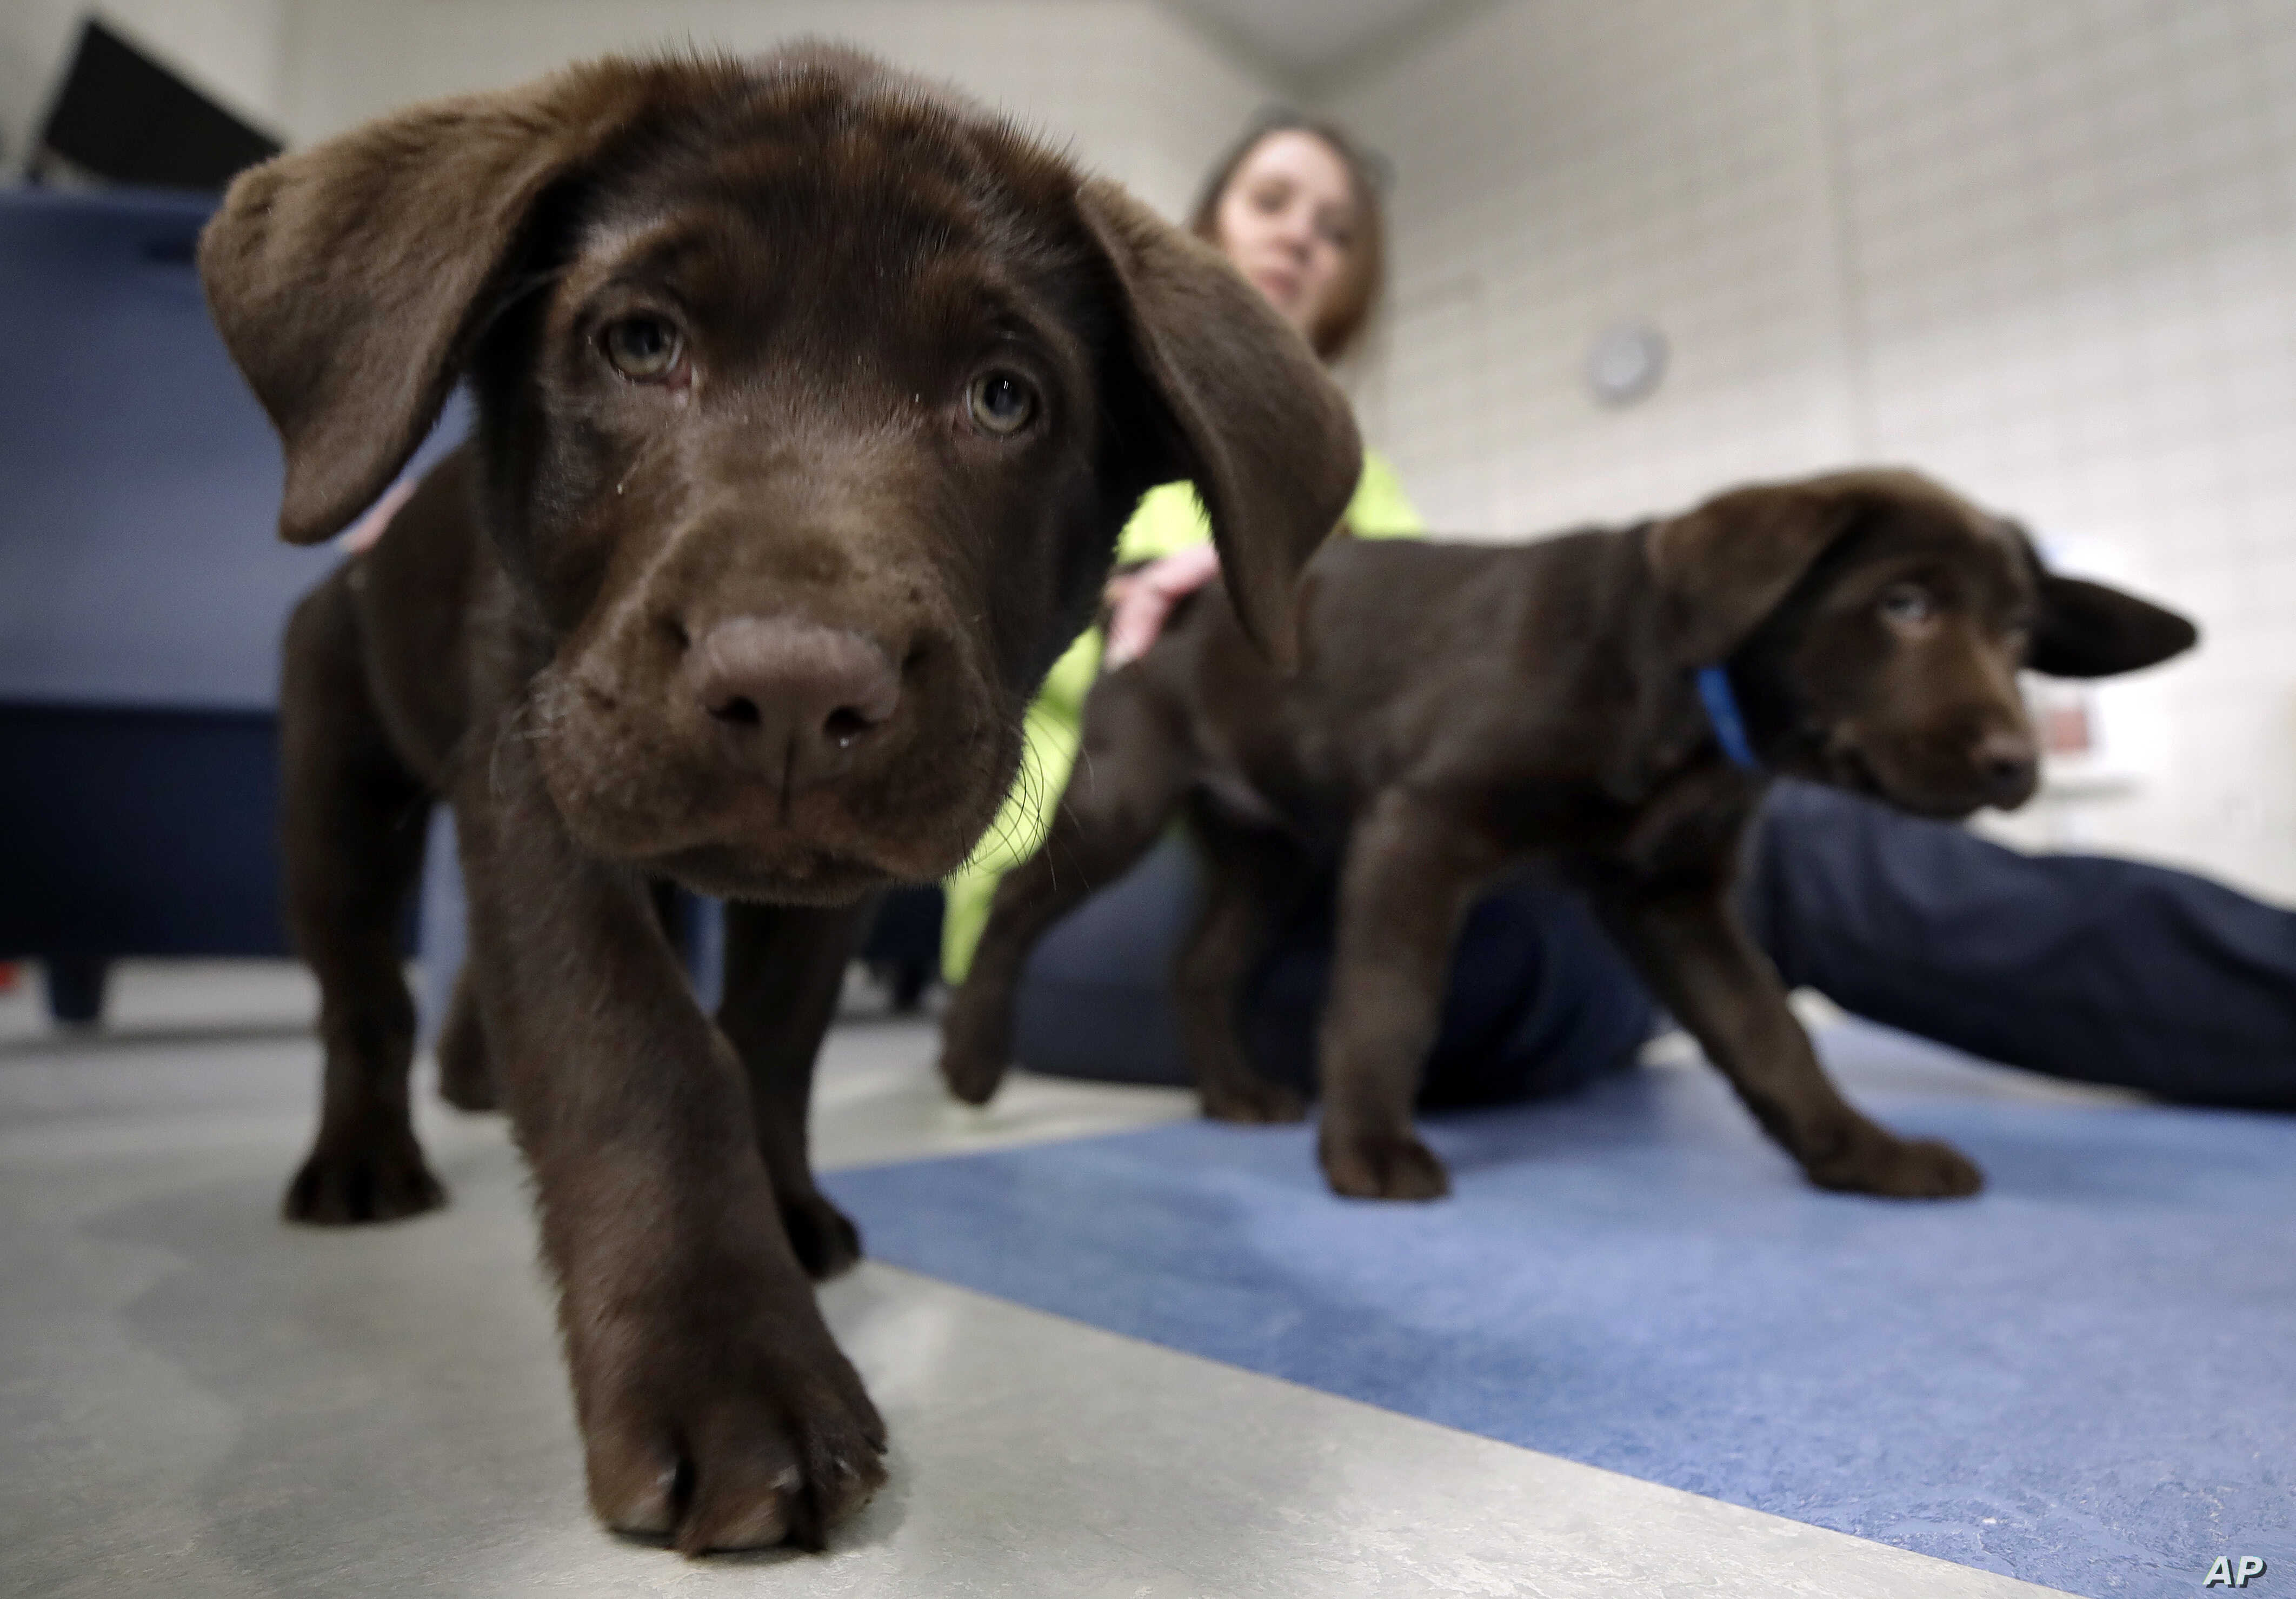 Inmates Battling Addiction Get Unlikely Ally: A Puppy